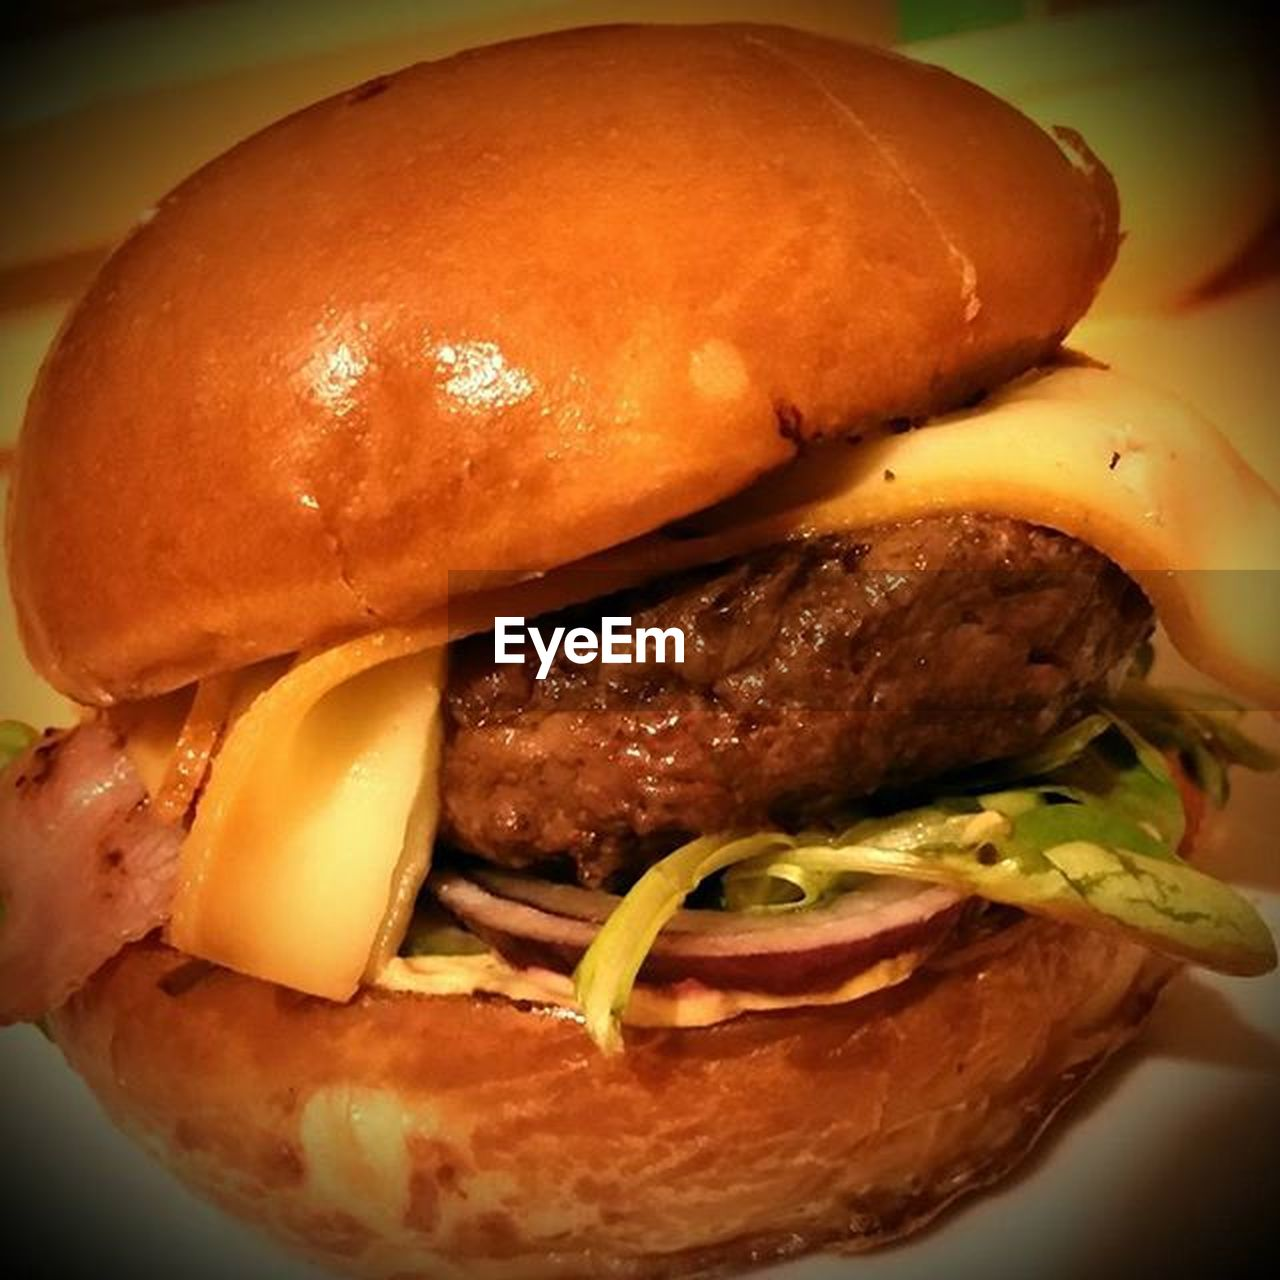 food, burger, food and drink, hamburger, fast food, cheeseburger, bun, vegetable, ready-to-eat, take out food, no people, close-up, meat, freshness, indoors, unhealthy eating, beef, gourmet, homemade, minced